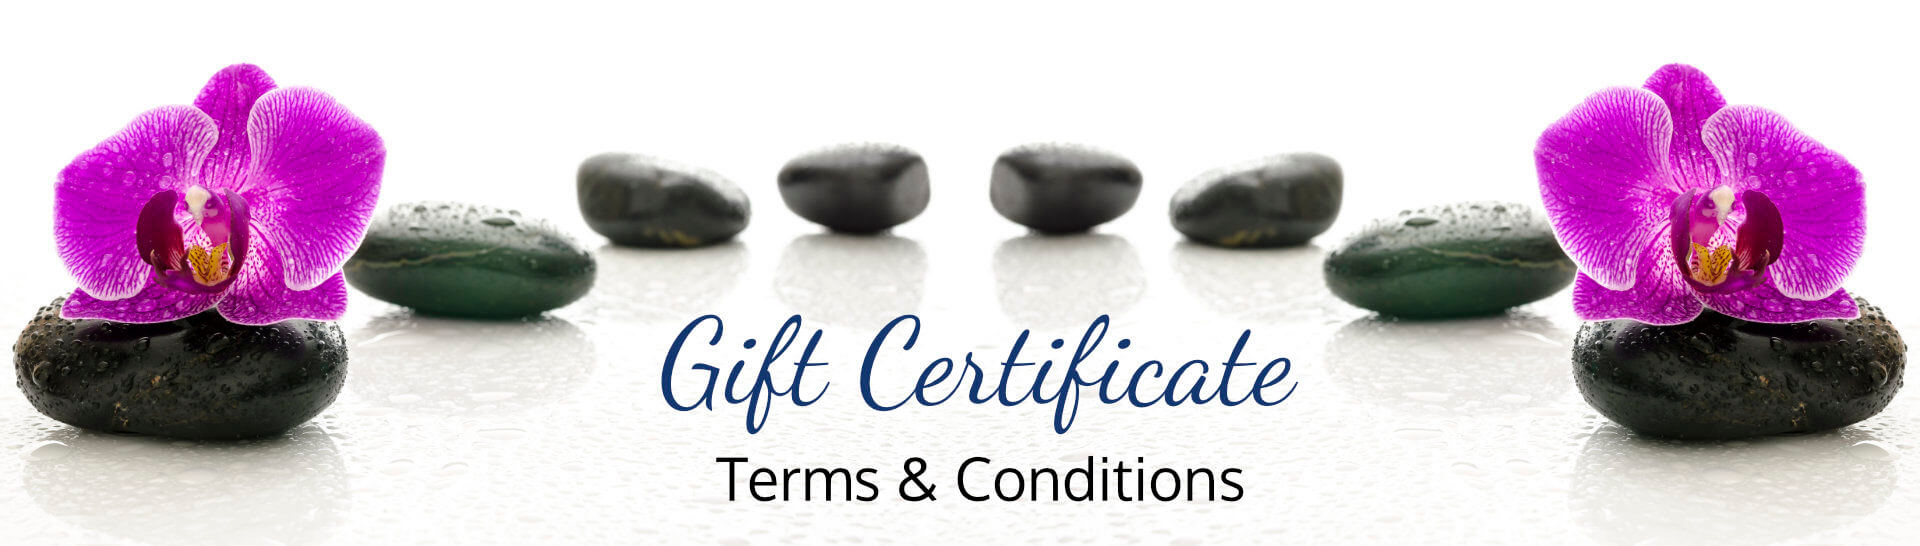 gift certificate terms & conditions